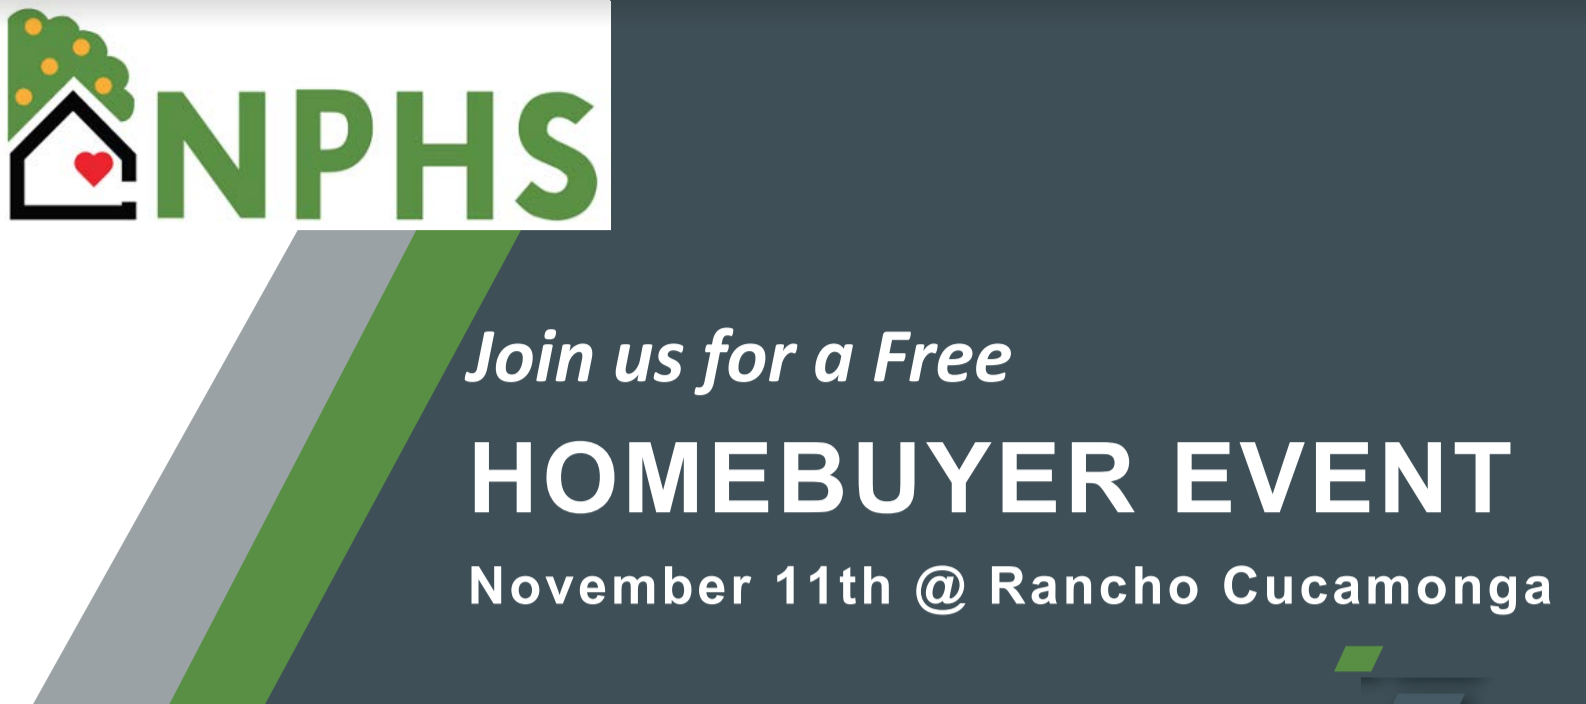 Home Buyer Resources Event in Rancho Cucamonga @ NPHS Training Center | Rancho Cucamonga | California | United States